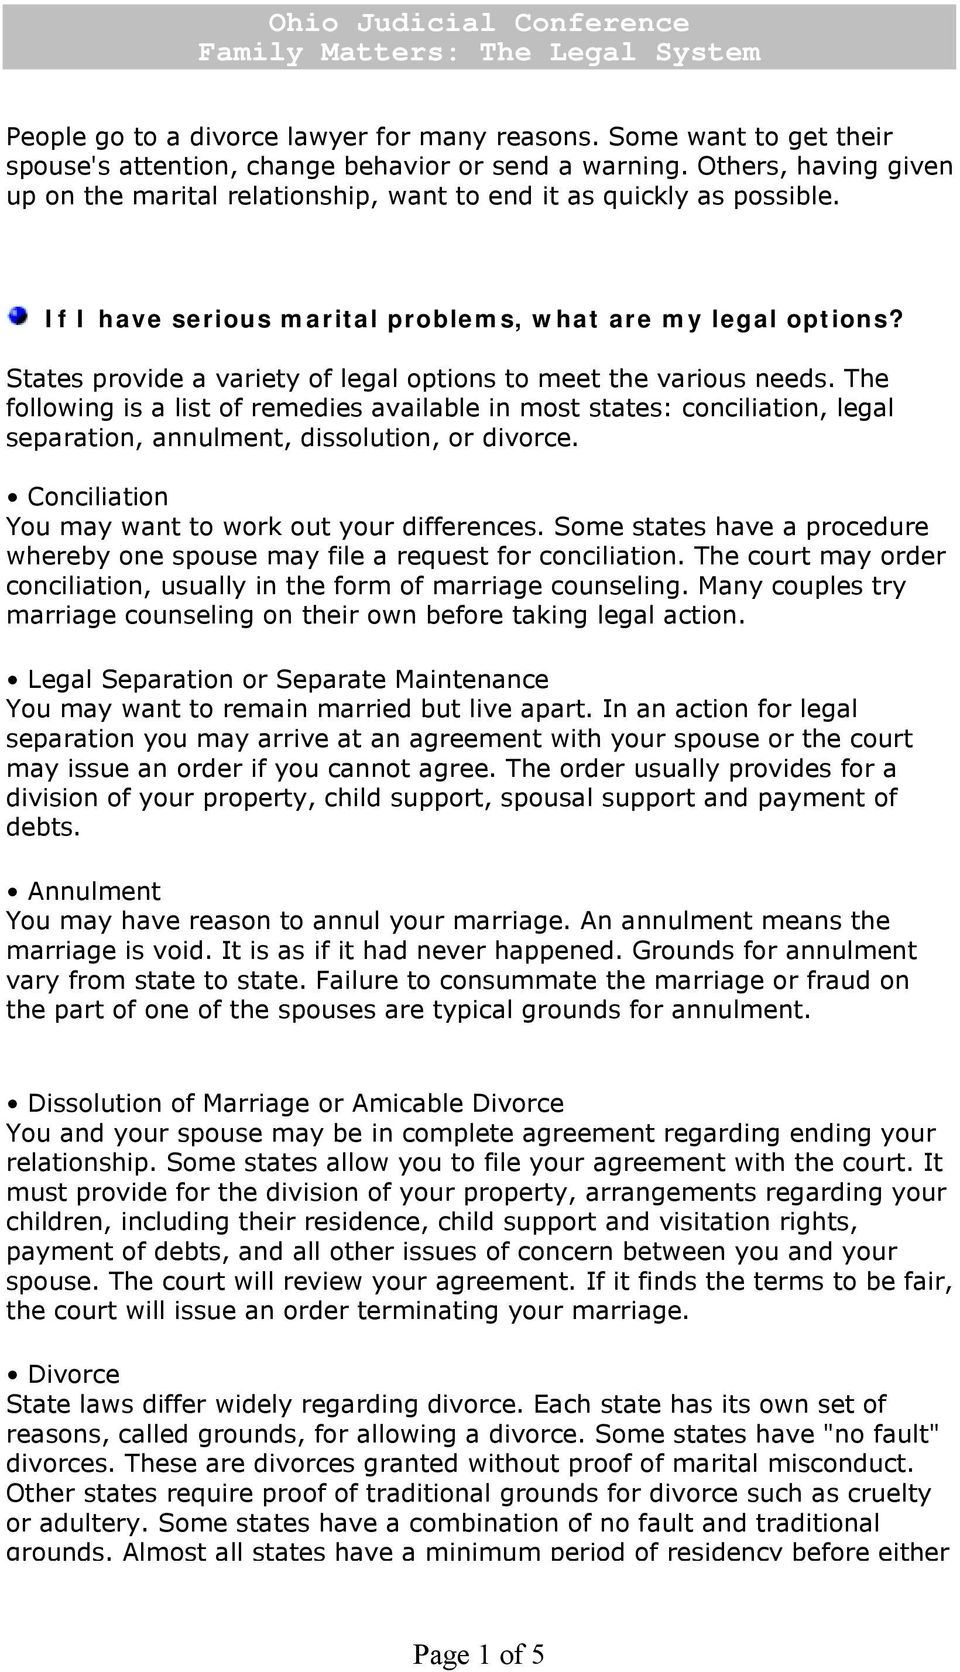 States provide a variety of legal options to meet the various needs. The following is a list of remedies available in most states: conciliation, legal separation, annulment, dissolution, or divorce.